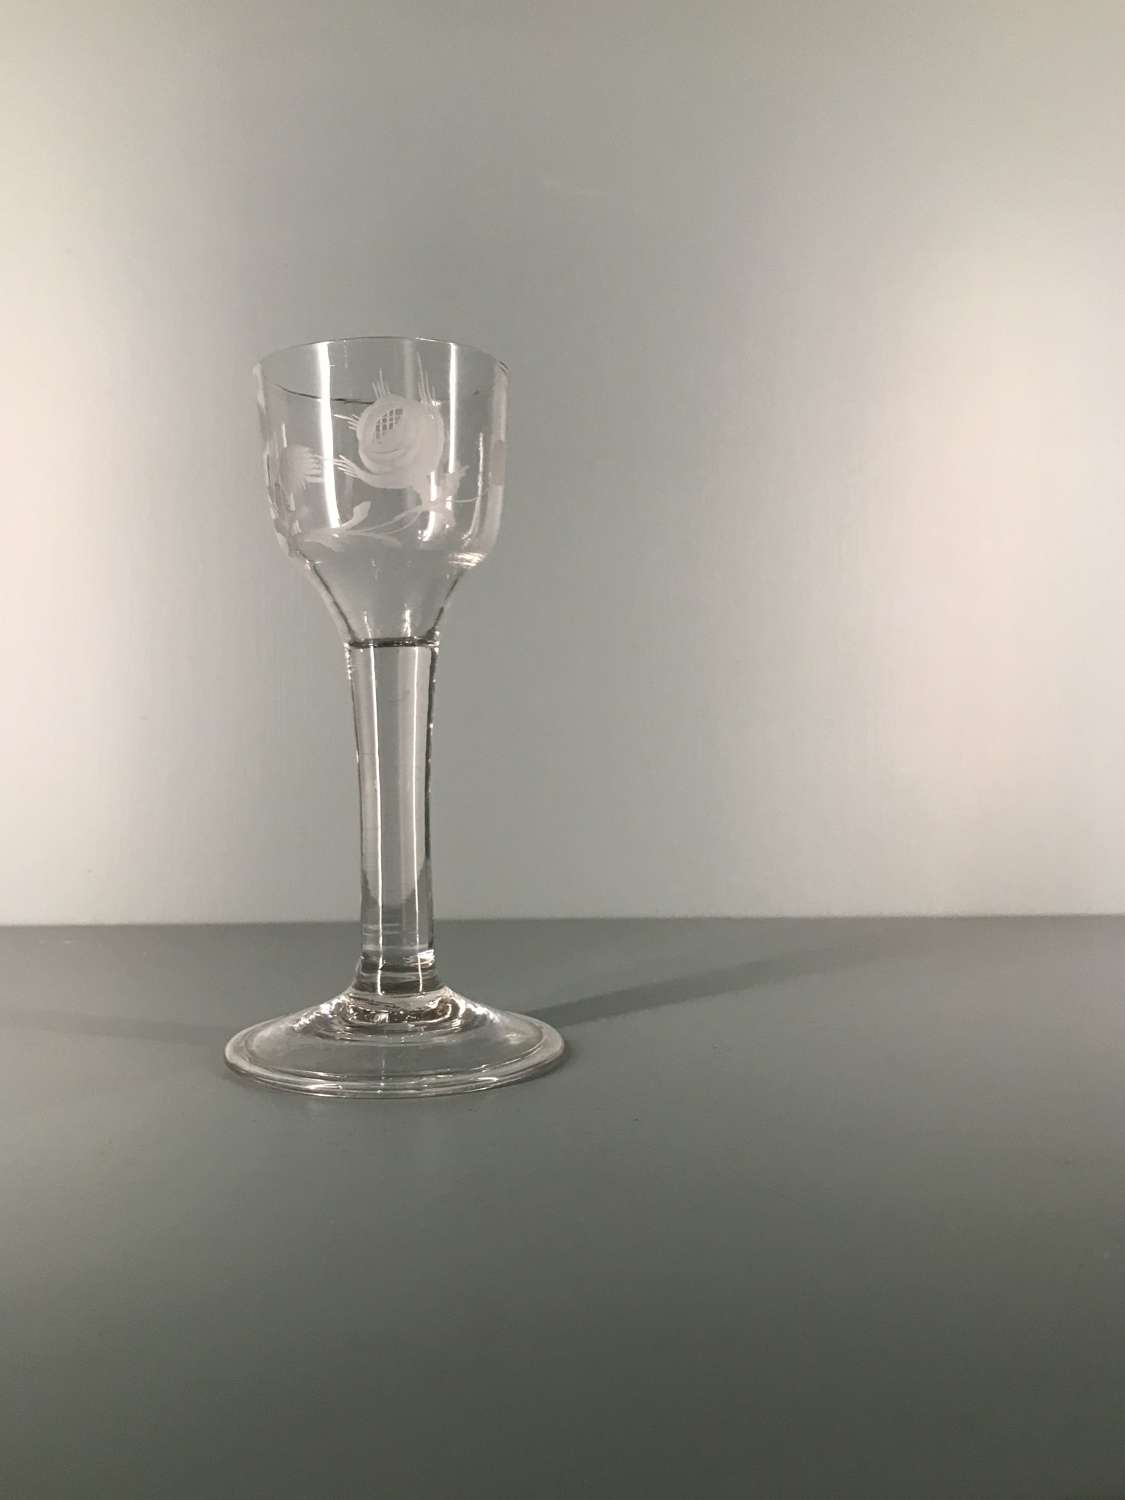 18th c. English engraved cordial glass